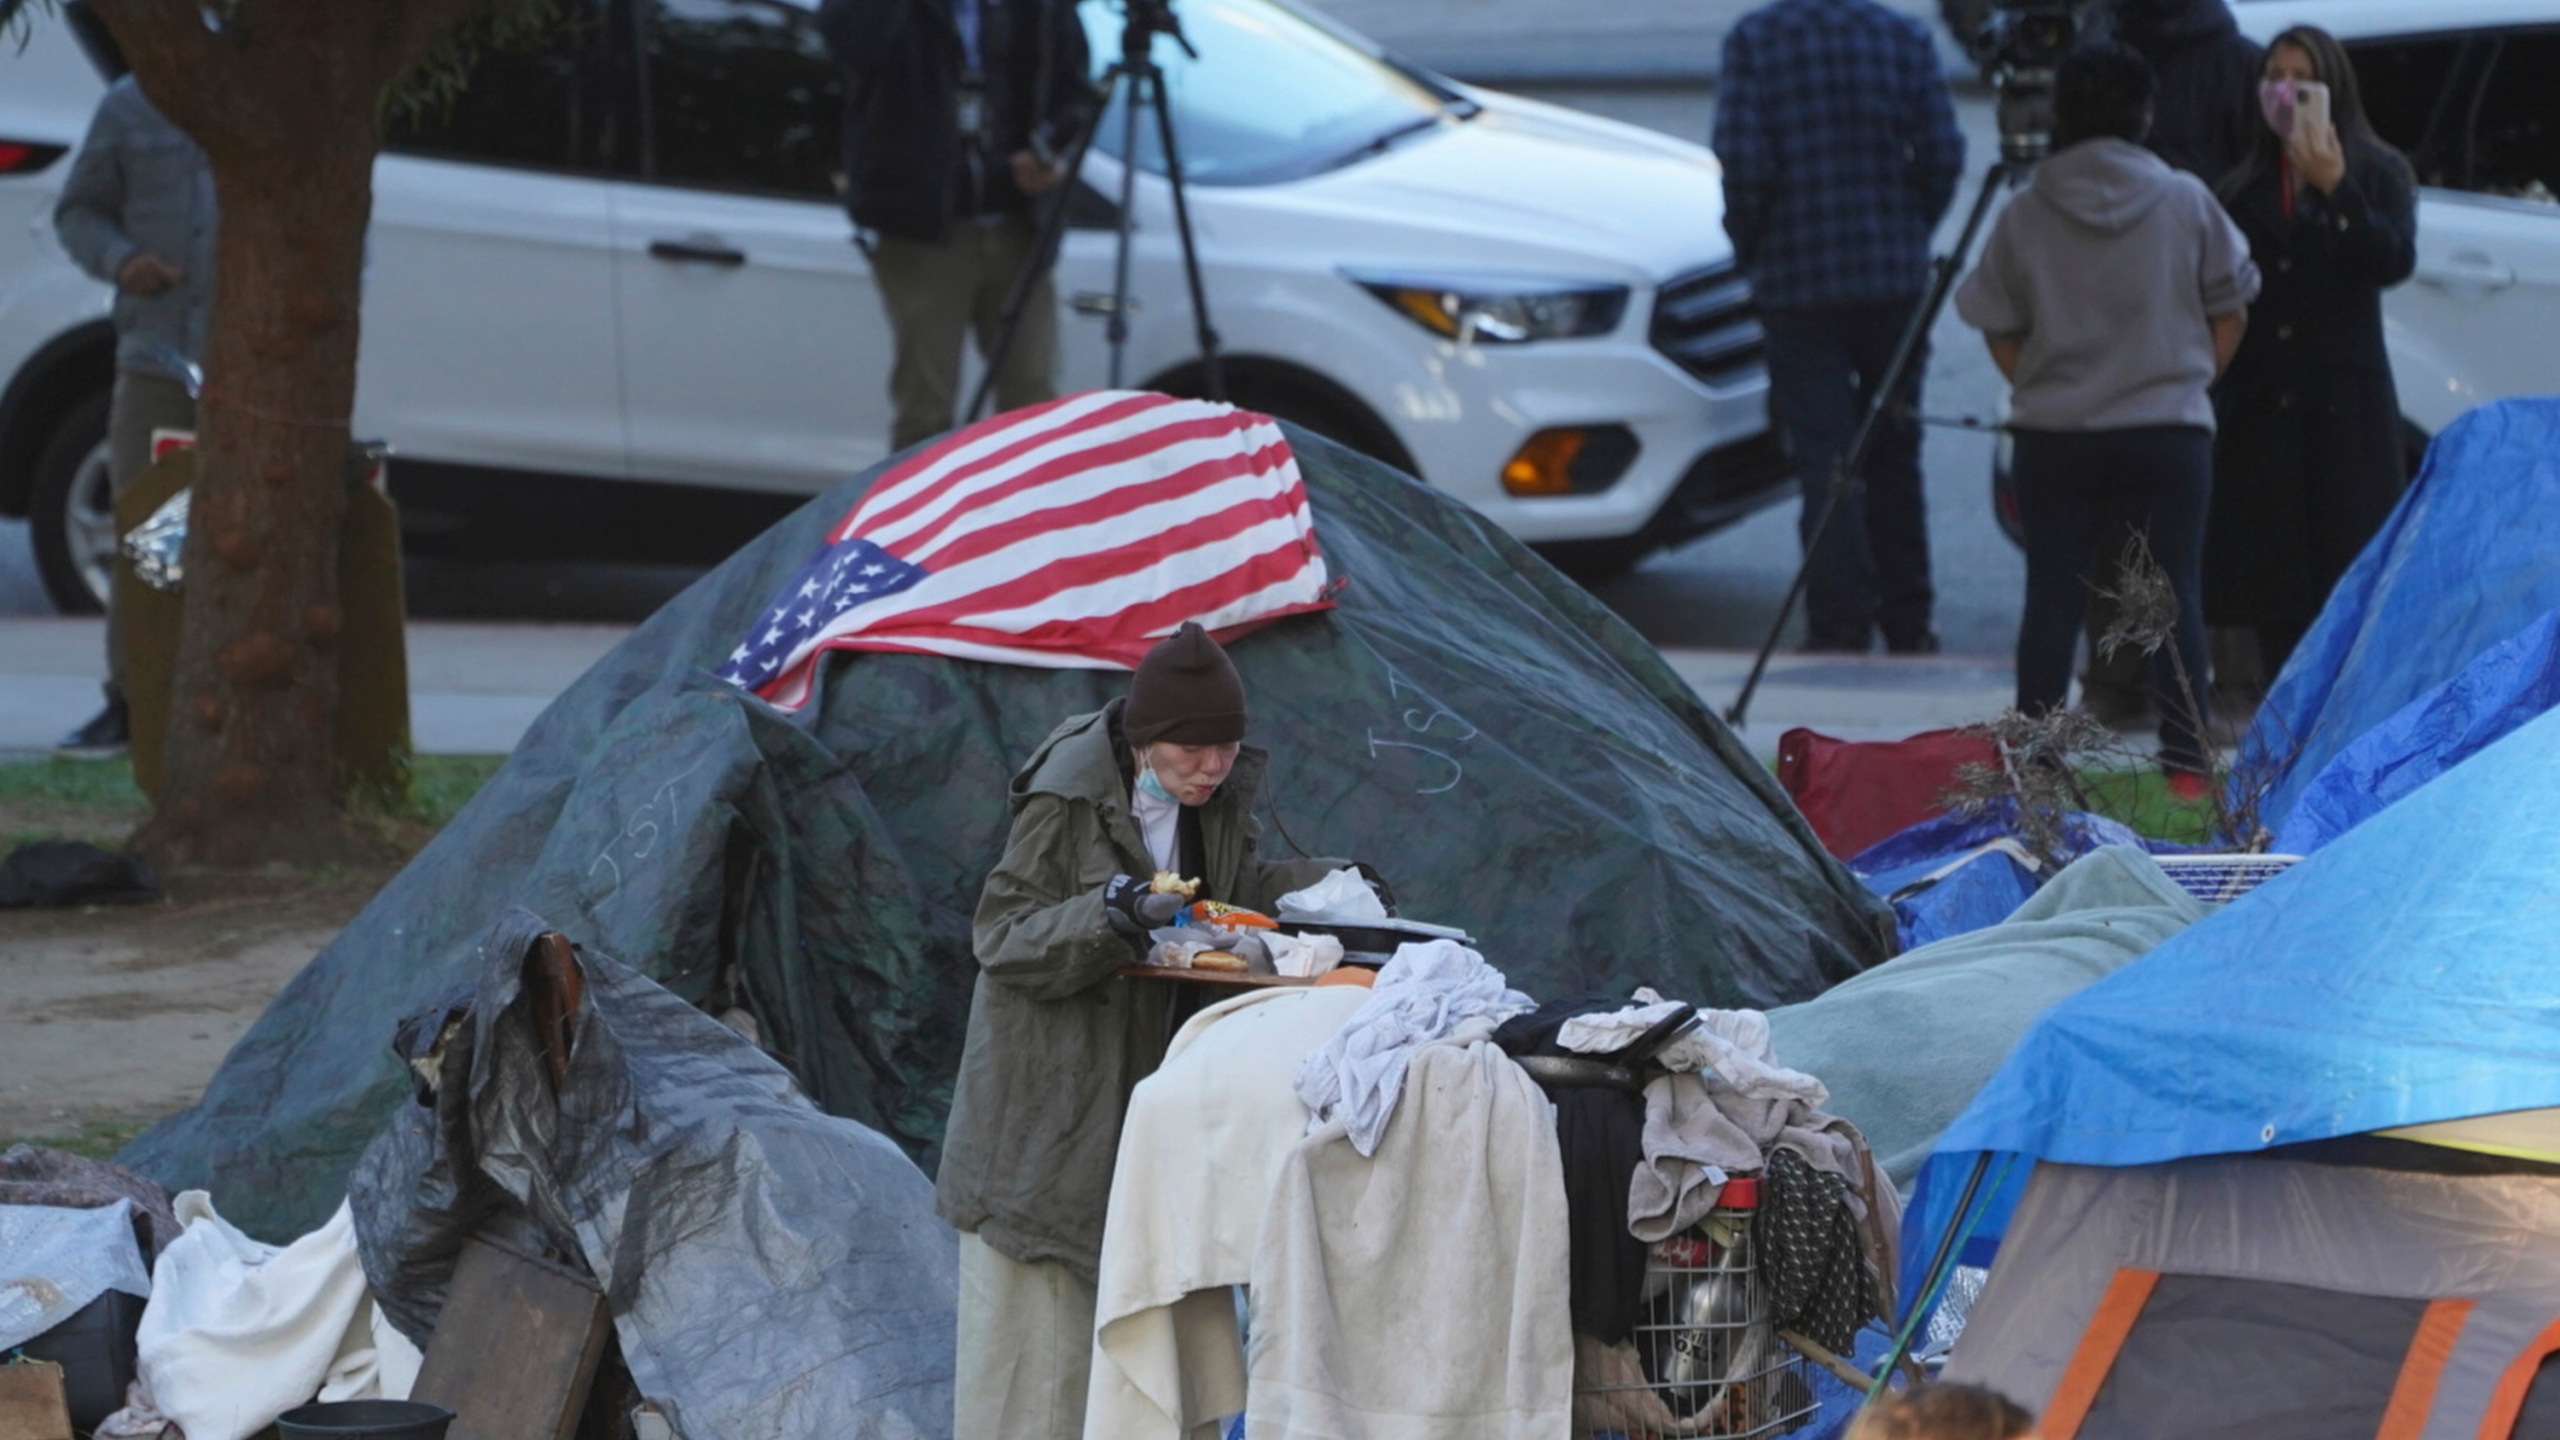 In this March 24, 2021, file photo a woman eats at her tent at the Echo Park homeless encampment at Echo Park Lake in Los Angeles. (AP Photo/Damian Dovarganes, File)